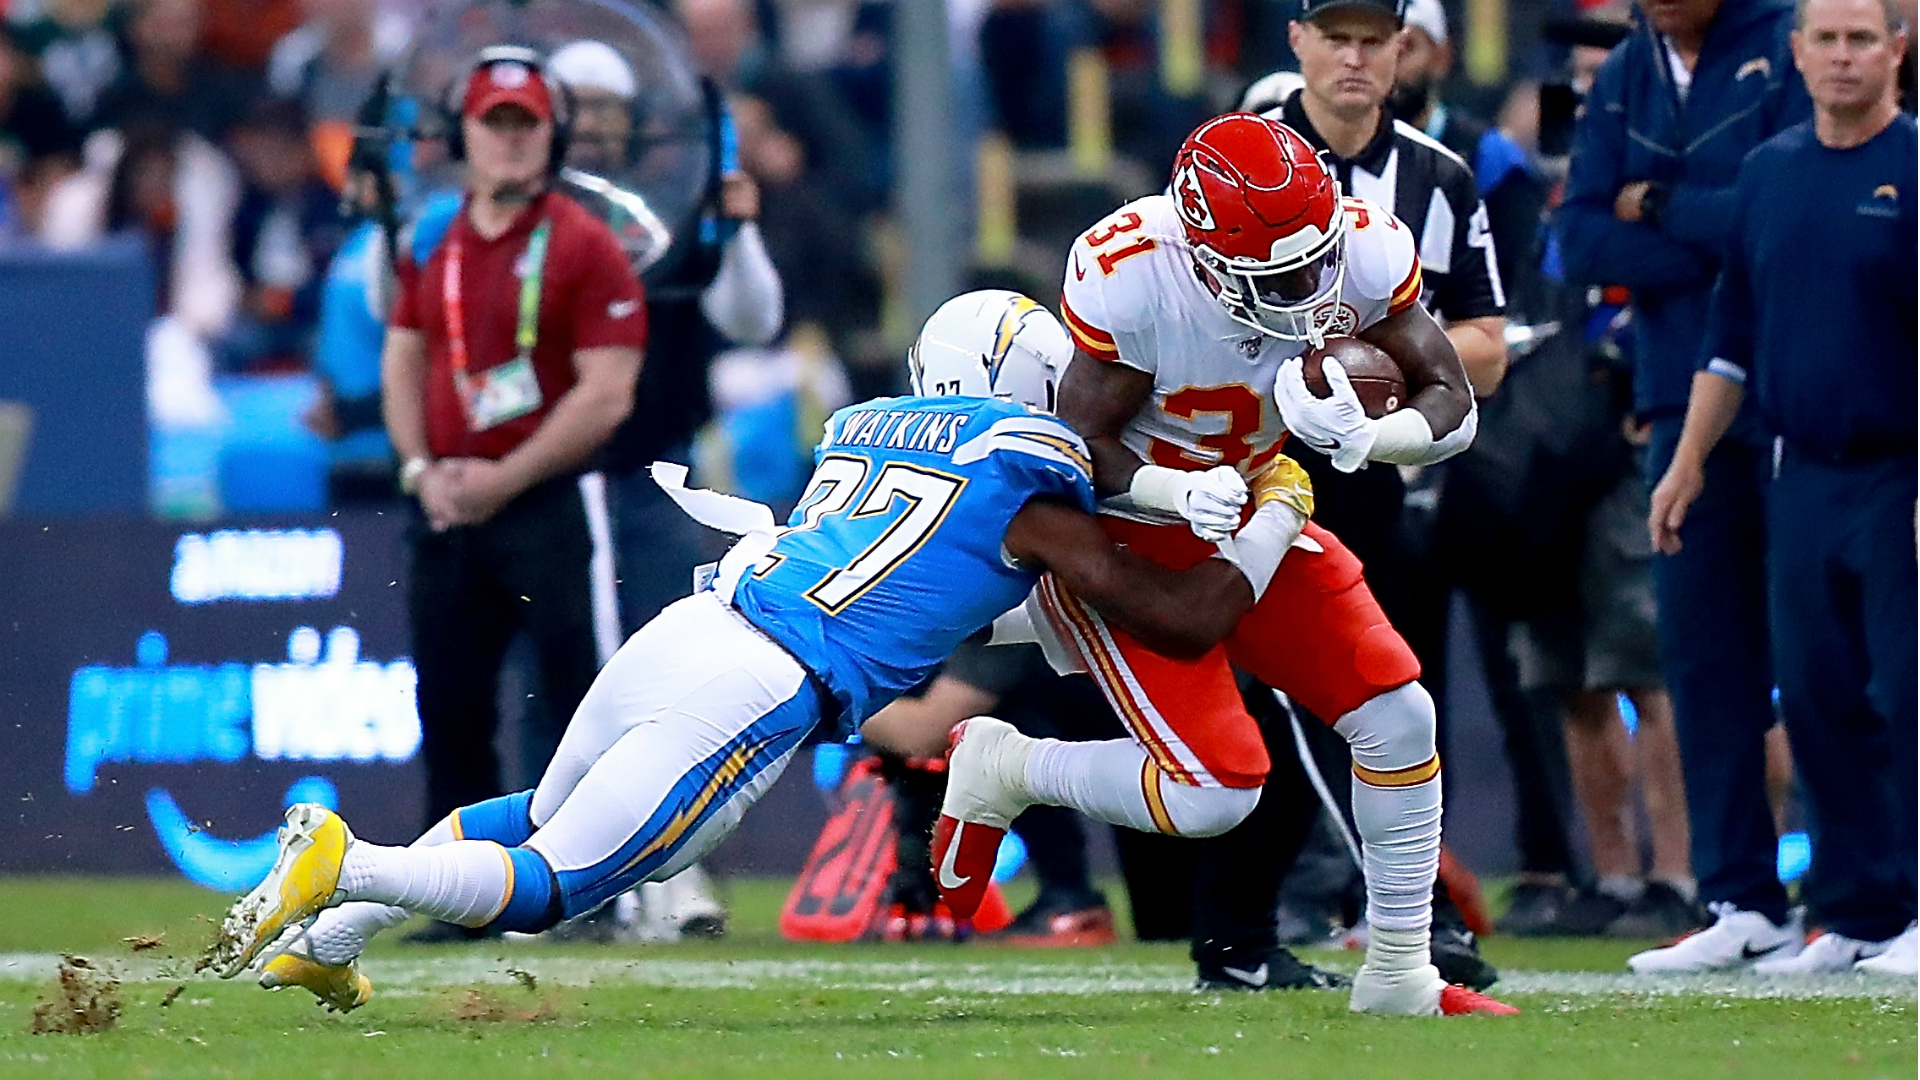 Chiefs vs. Chargers: Trouble with Mexico City turf during 'Monday Night Football'